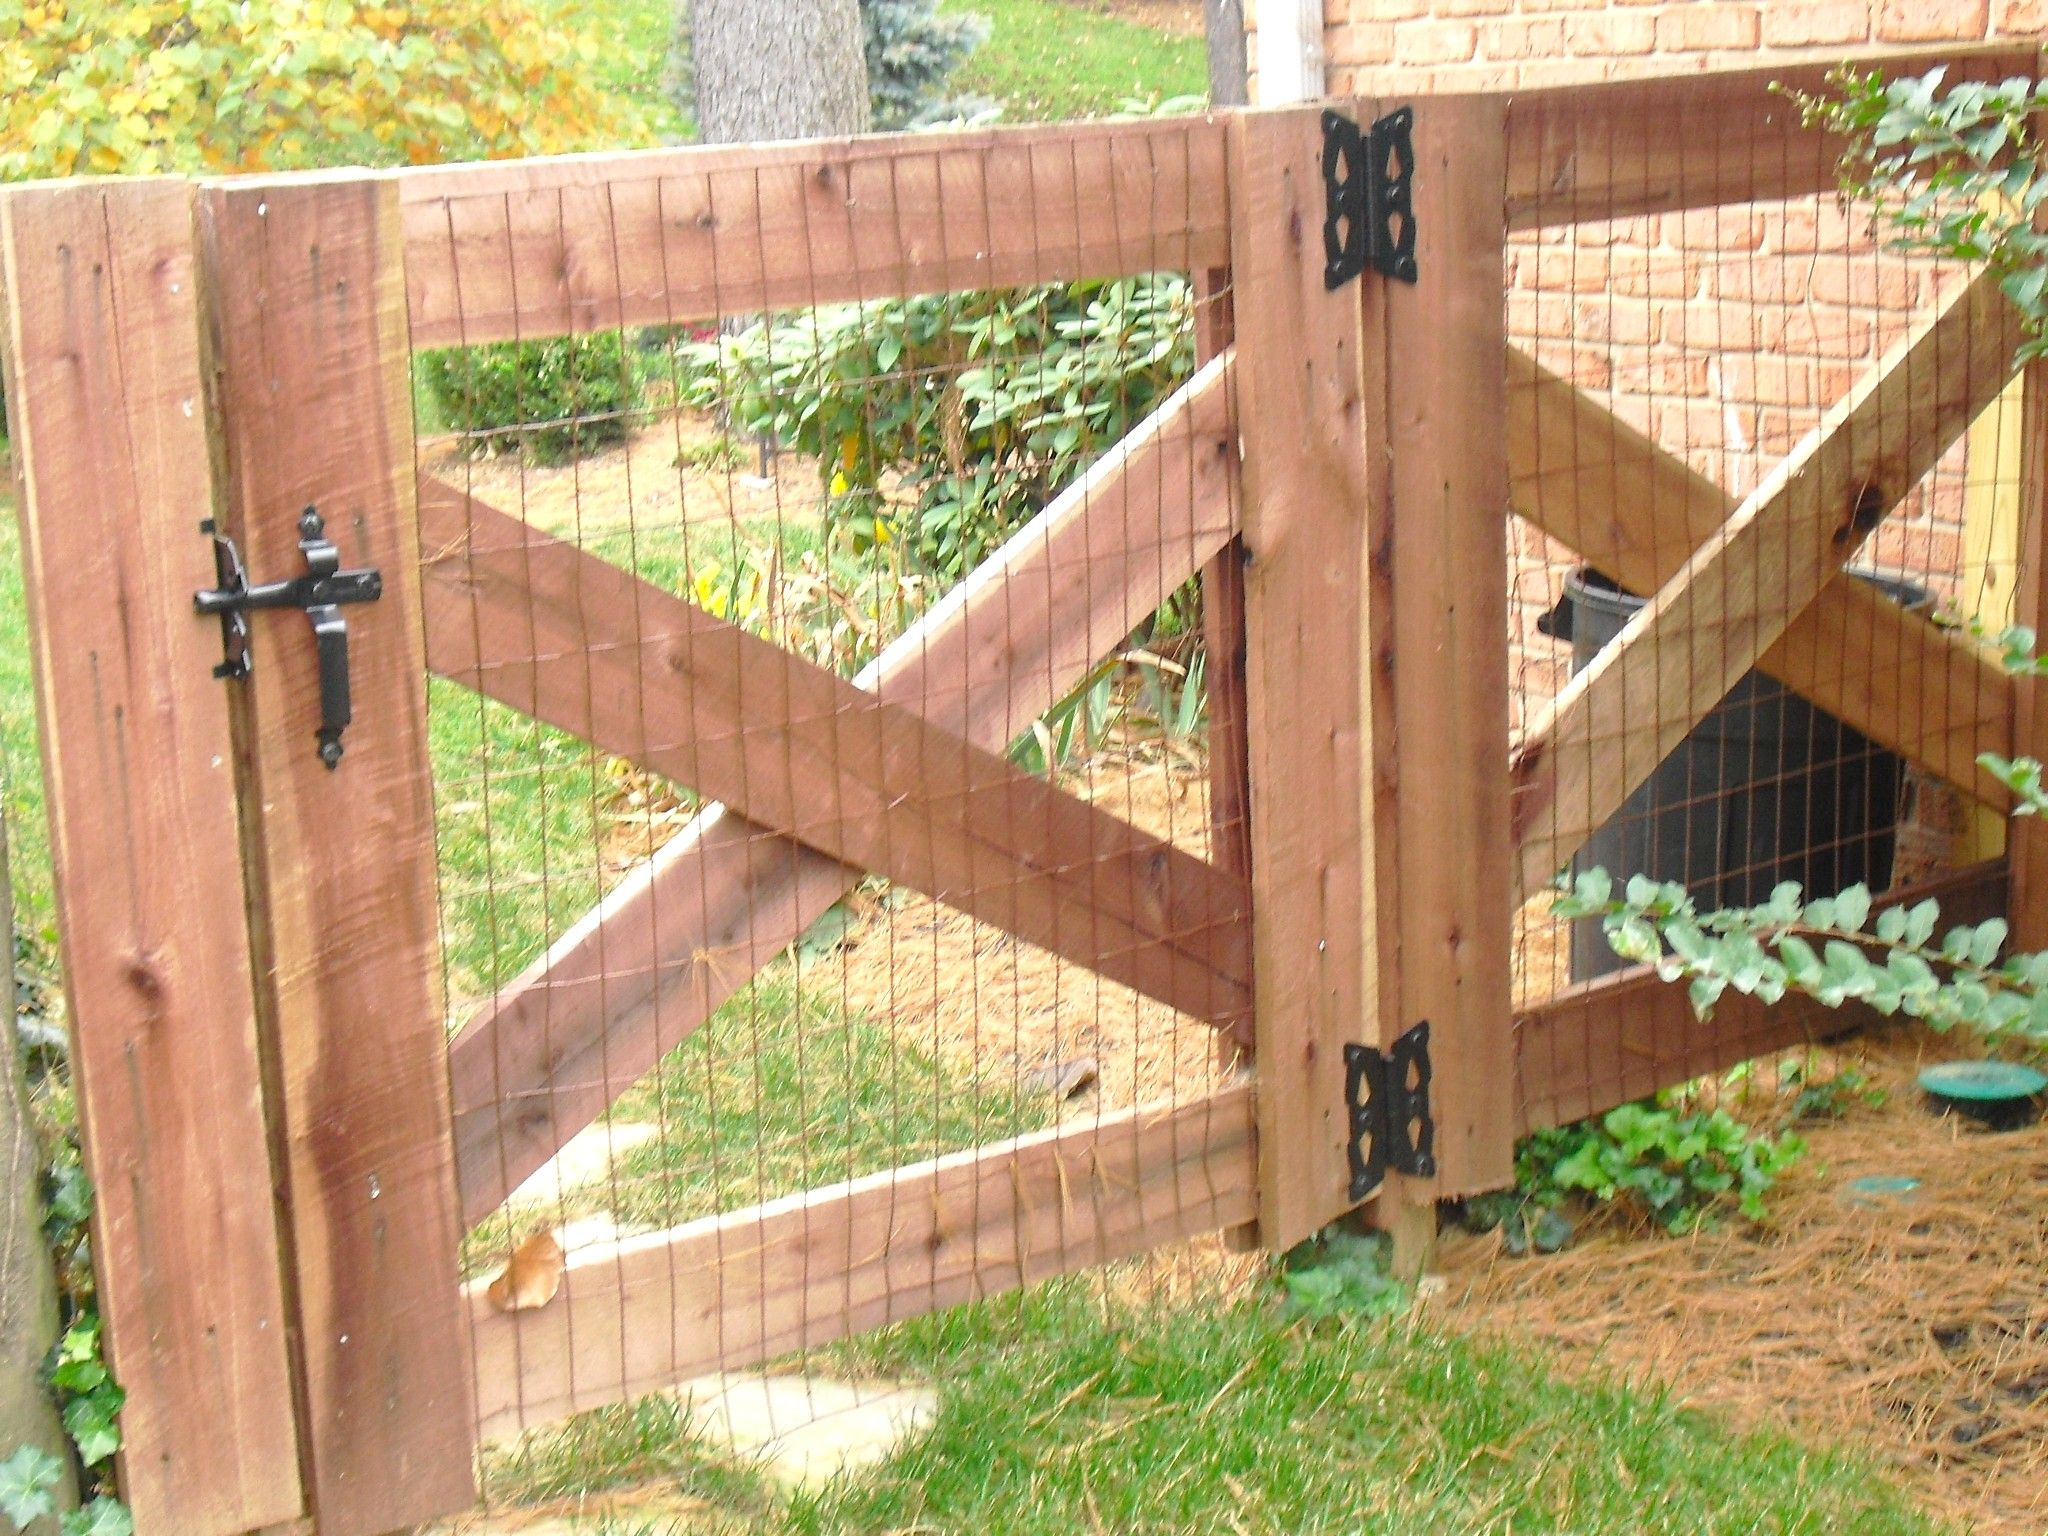 Fencing Door & Driveway Fence Plans 4 Foot Double Gate